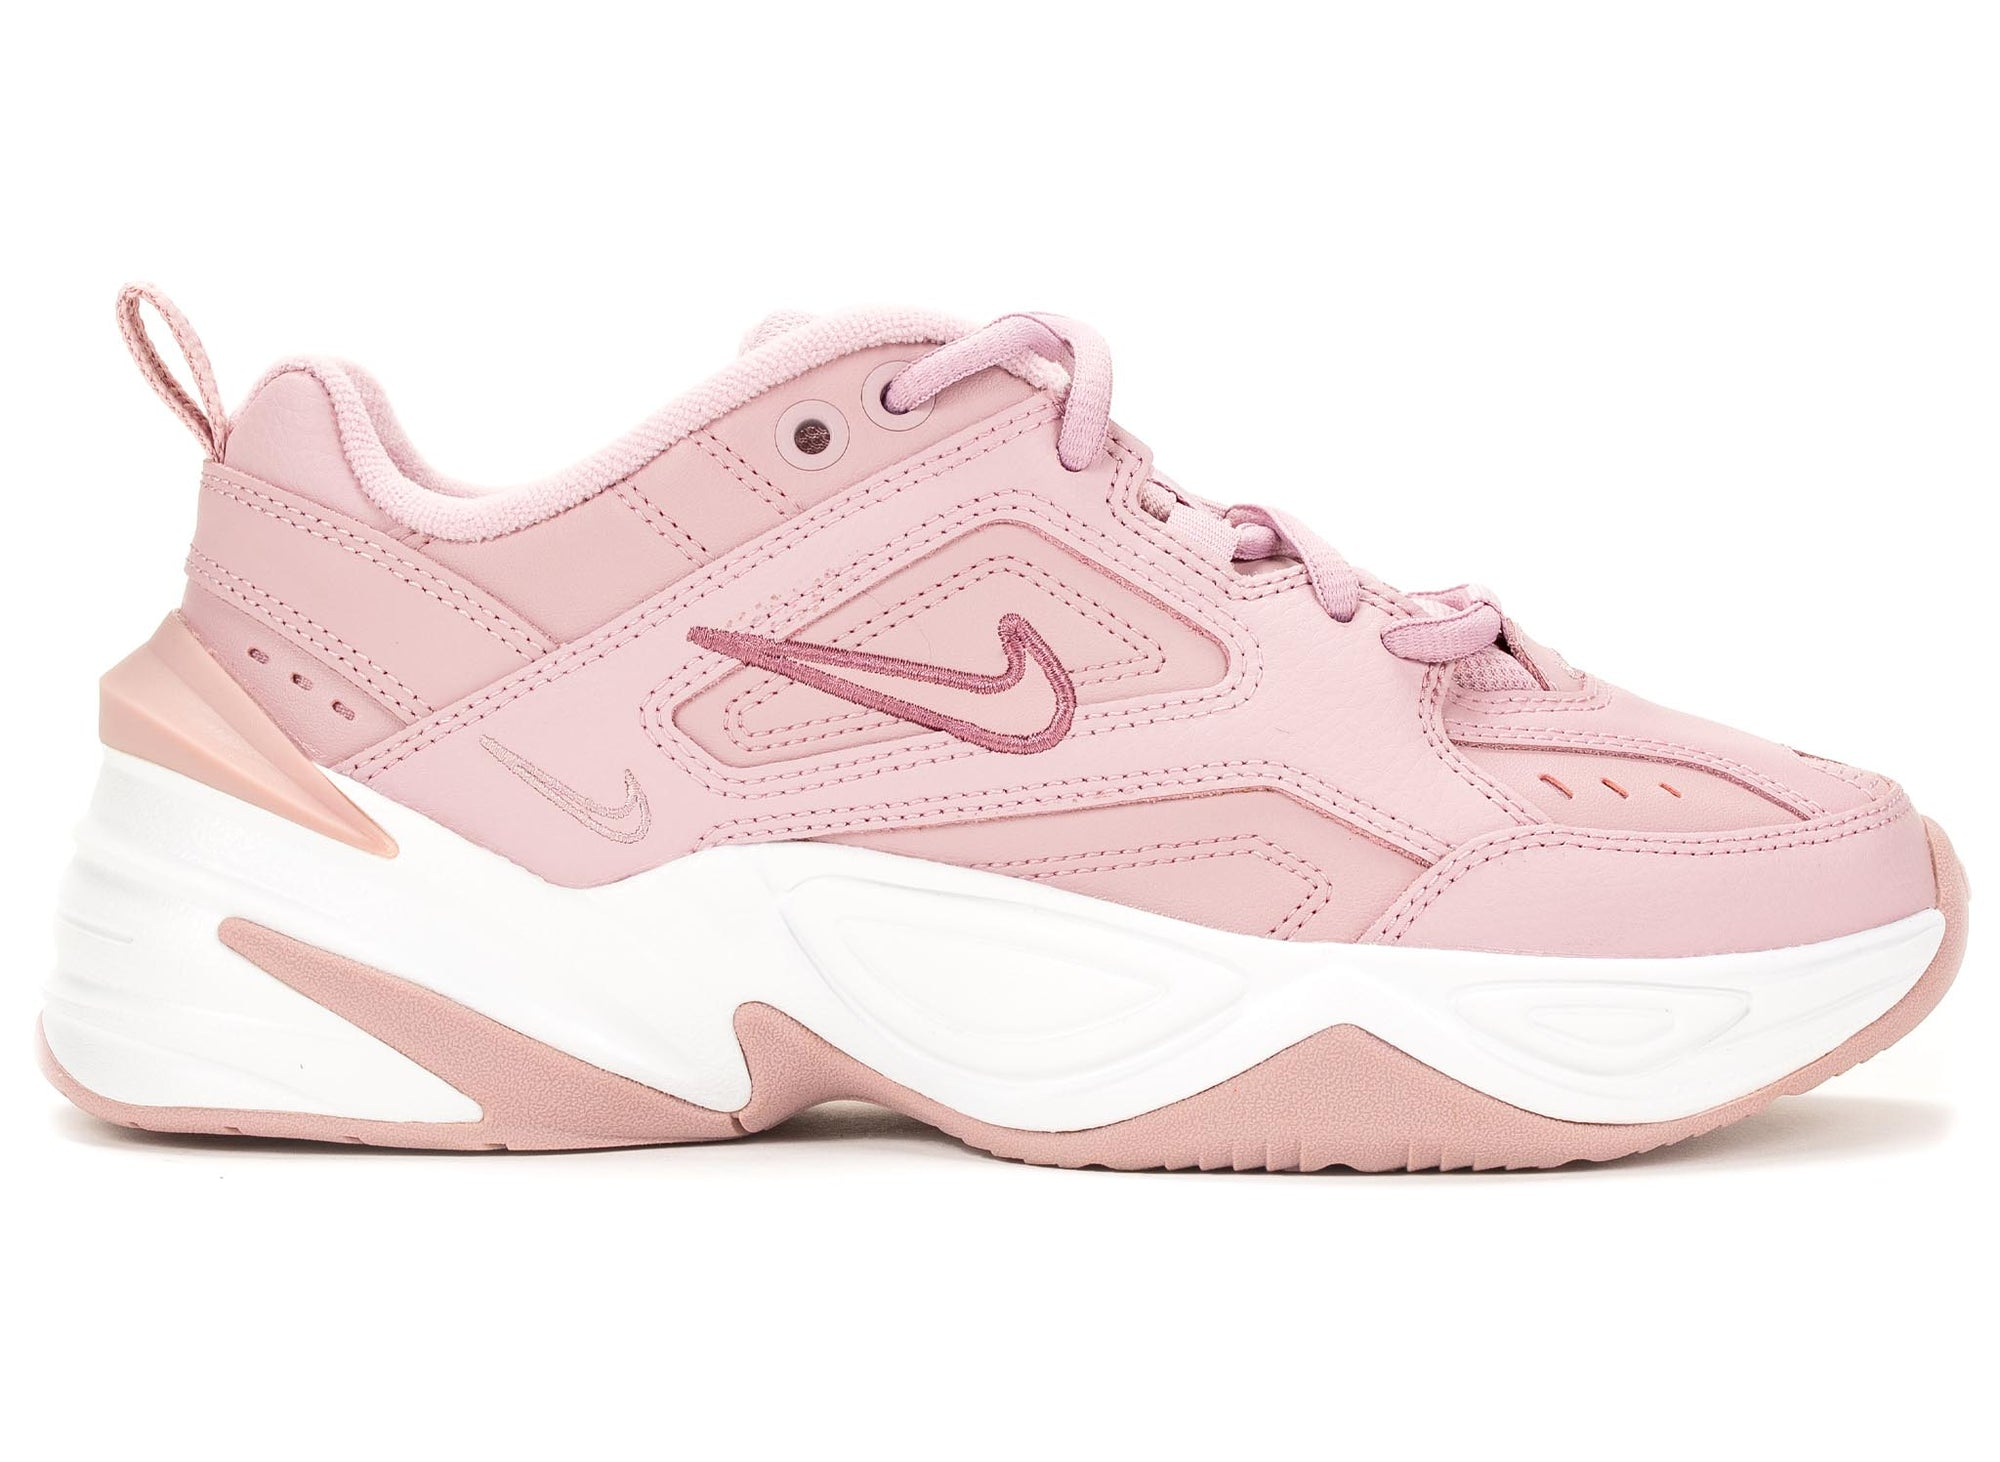 finest selection 3b9f7 a638a Women s NIKE M2K TEKNO - Plum Chalk